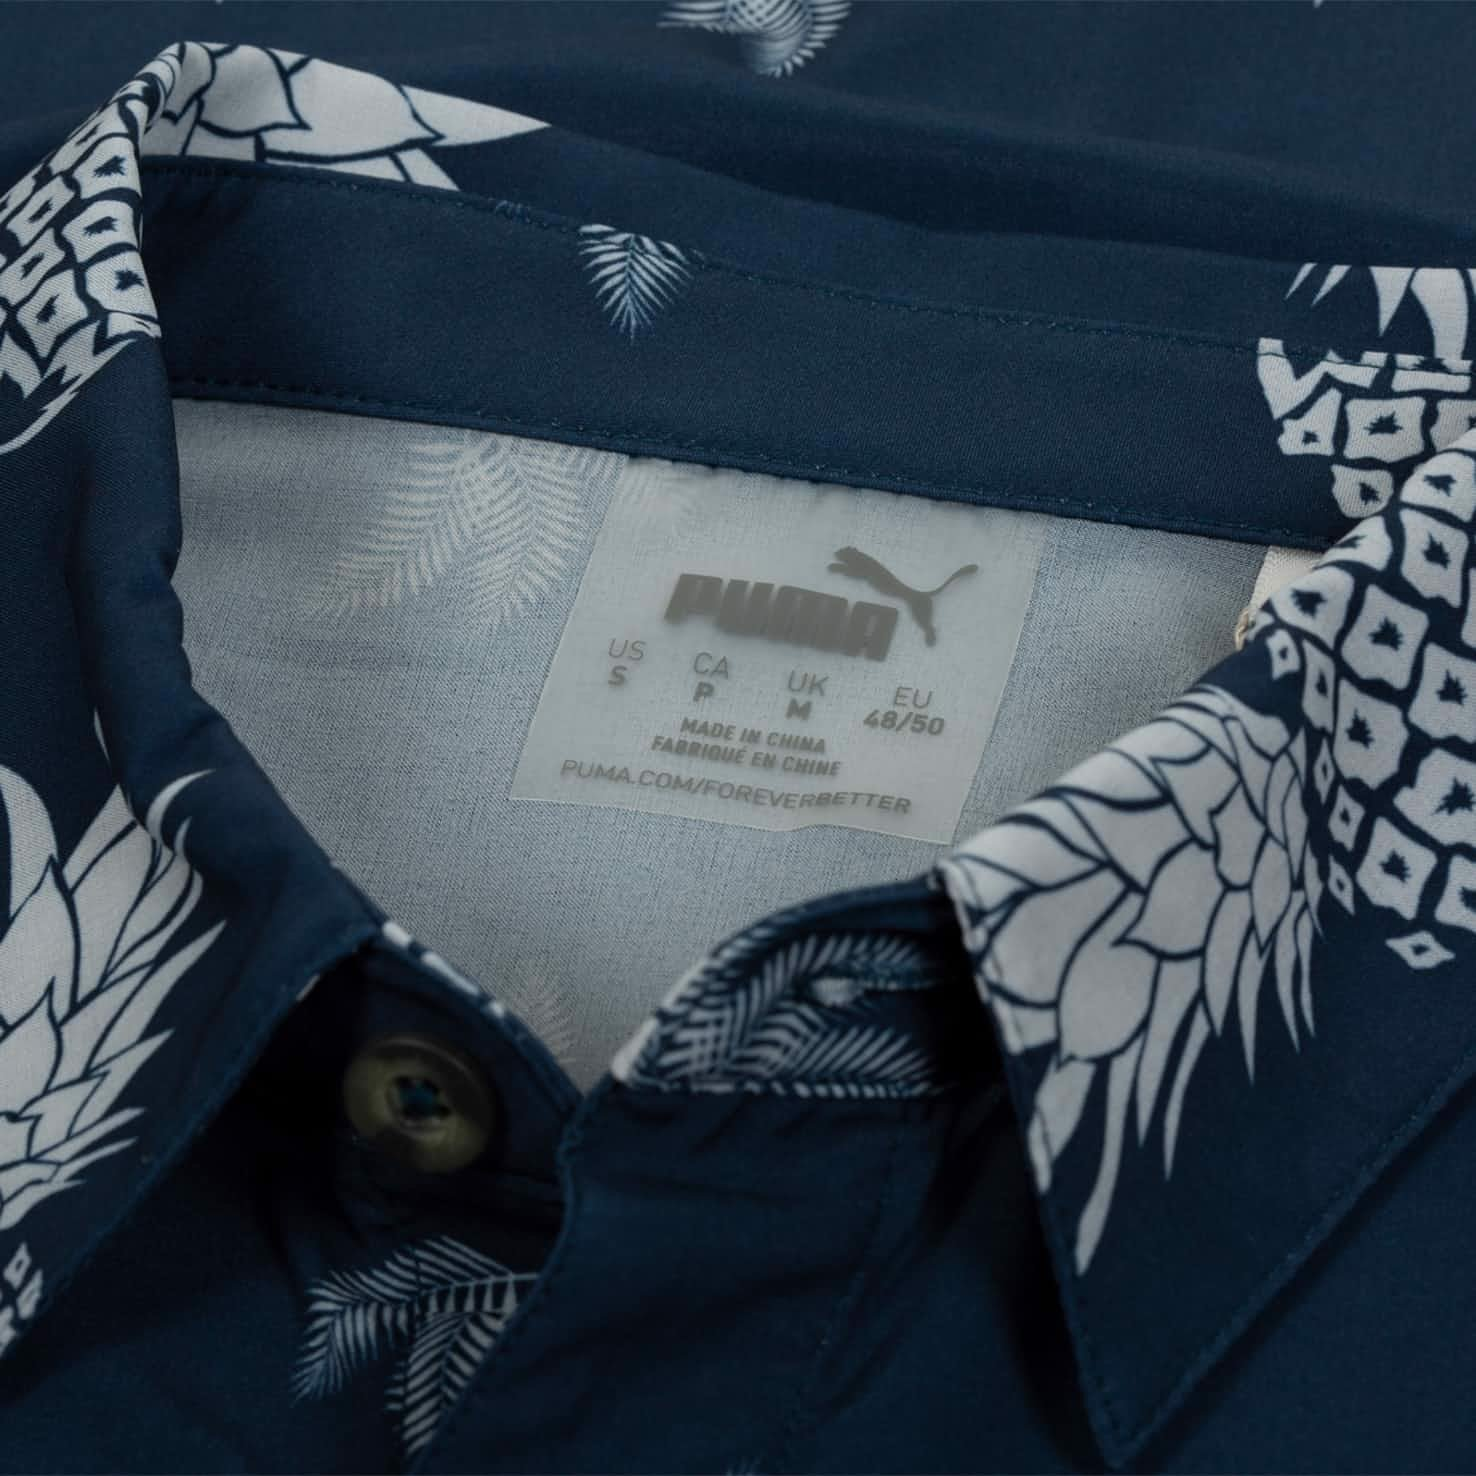 Áo sơ mi Islands Shirt - Dark Denim 596394 01 | Puma